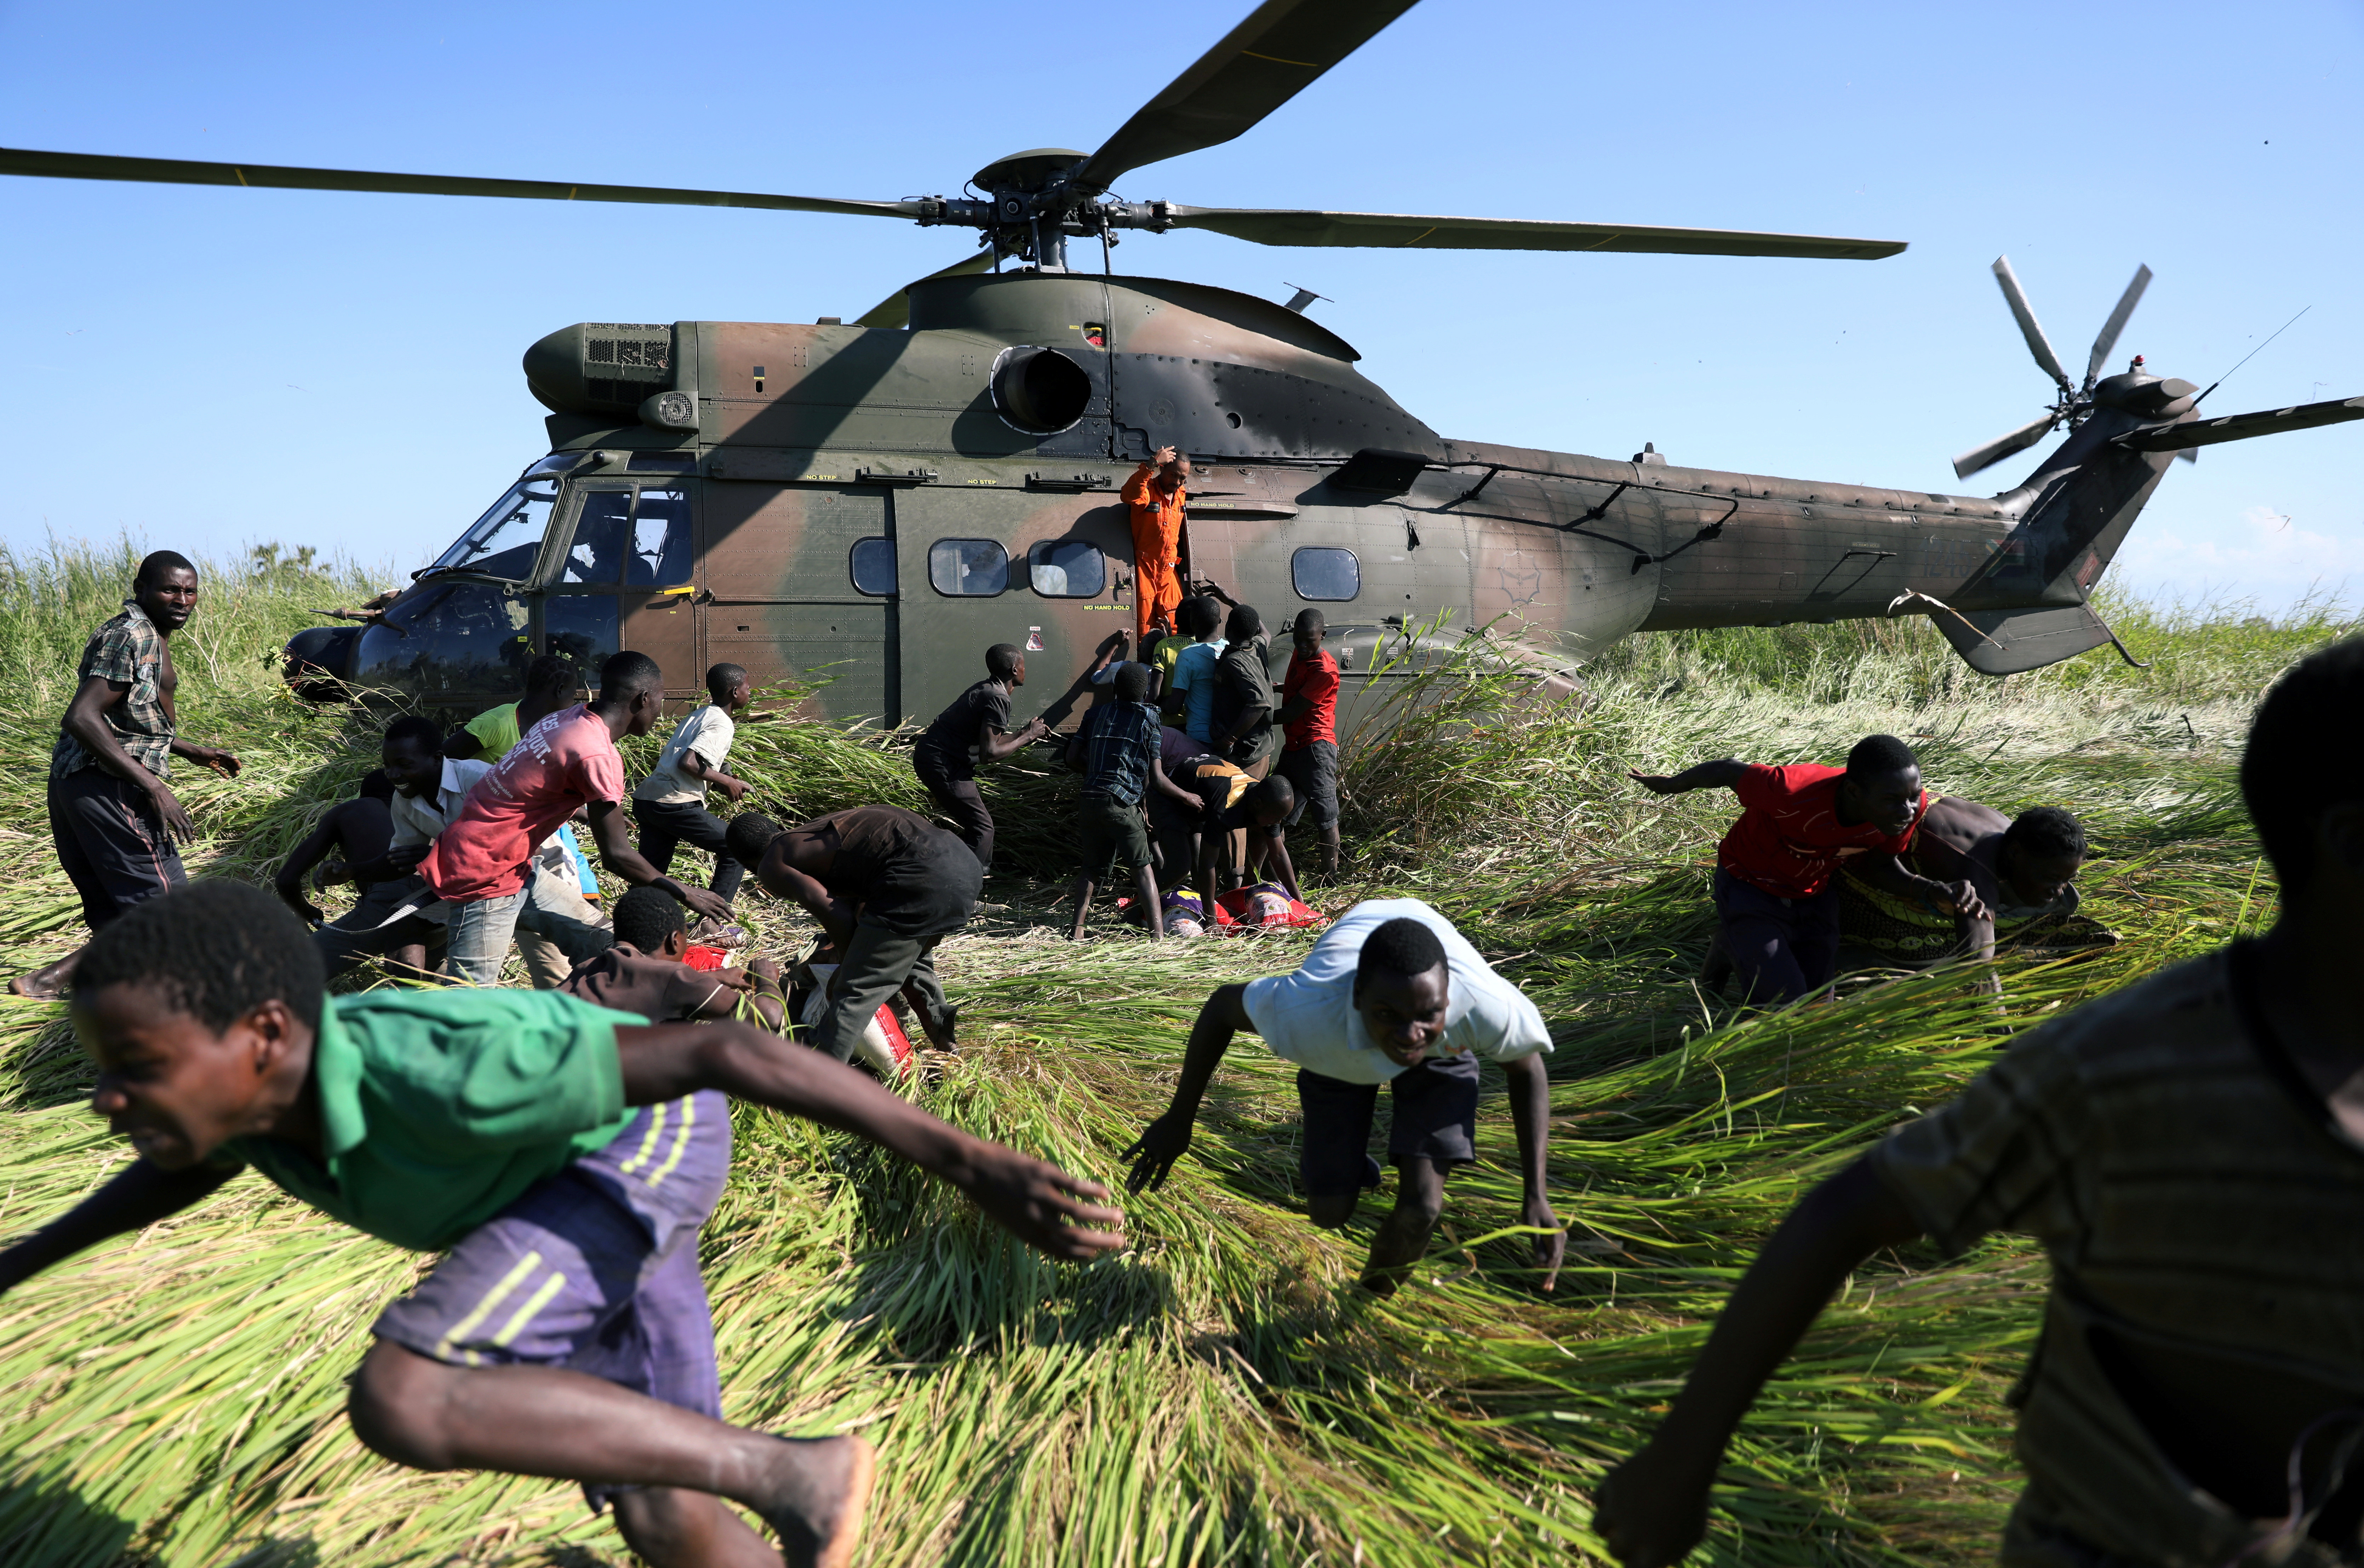 People run after collecting food aid from a South African army helicopter in the aftermath of Cyclone Idai in Mozambique, March 2019.